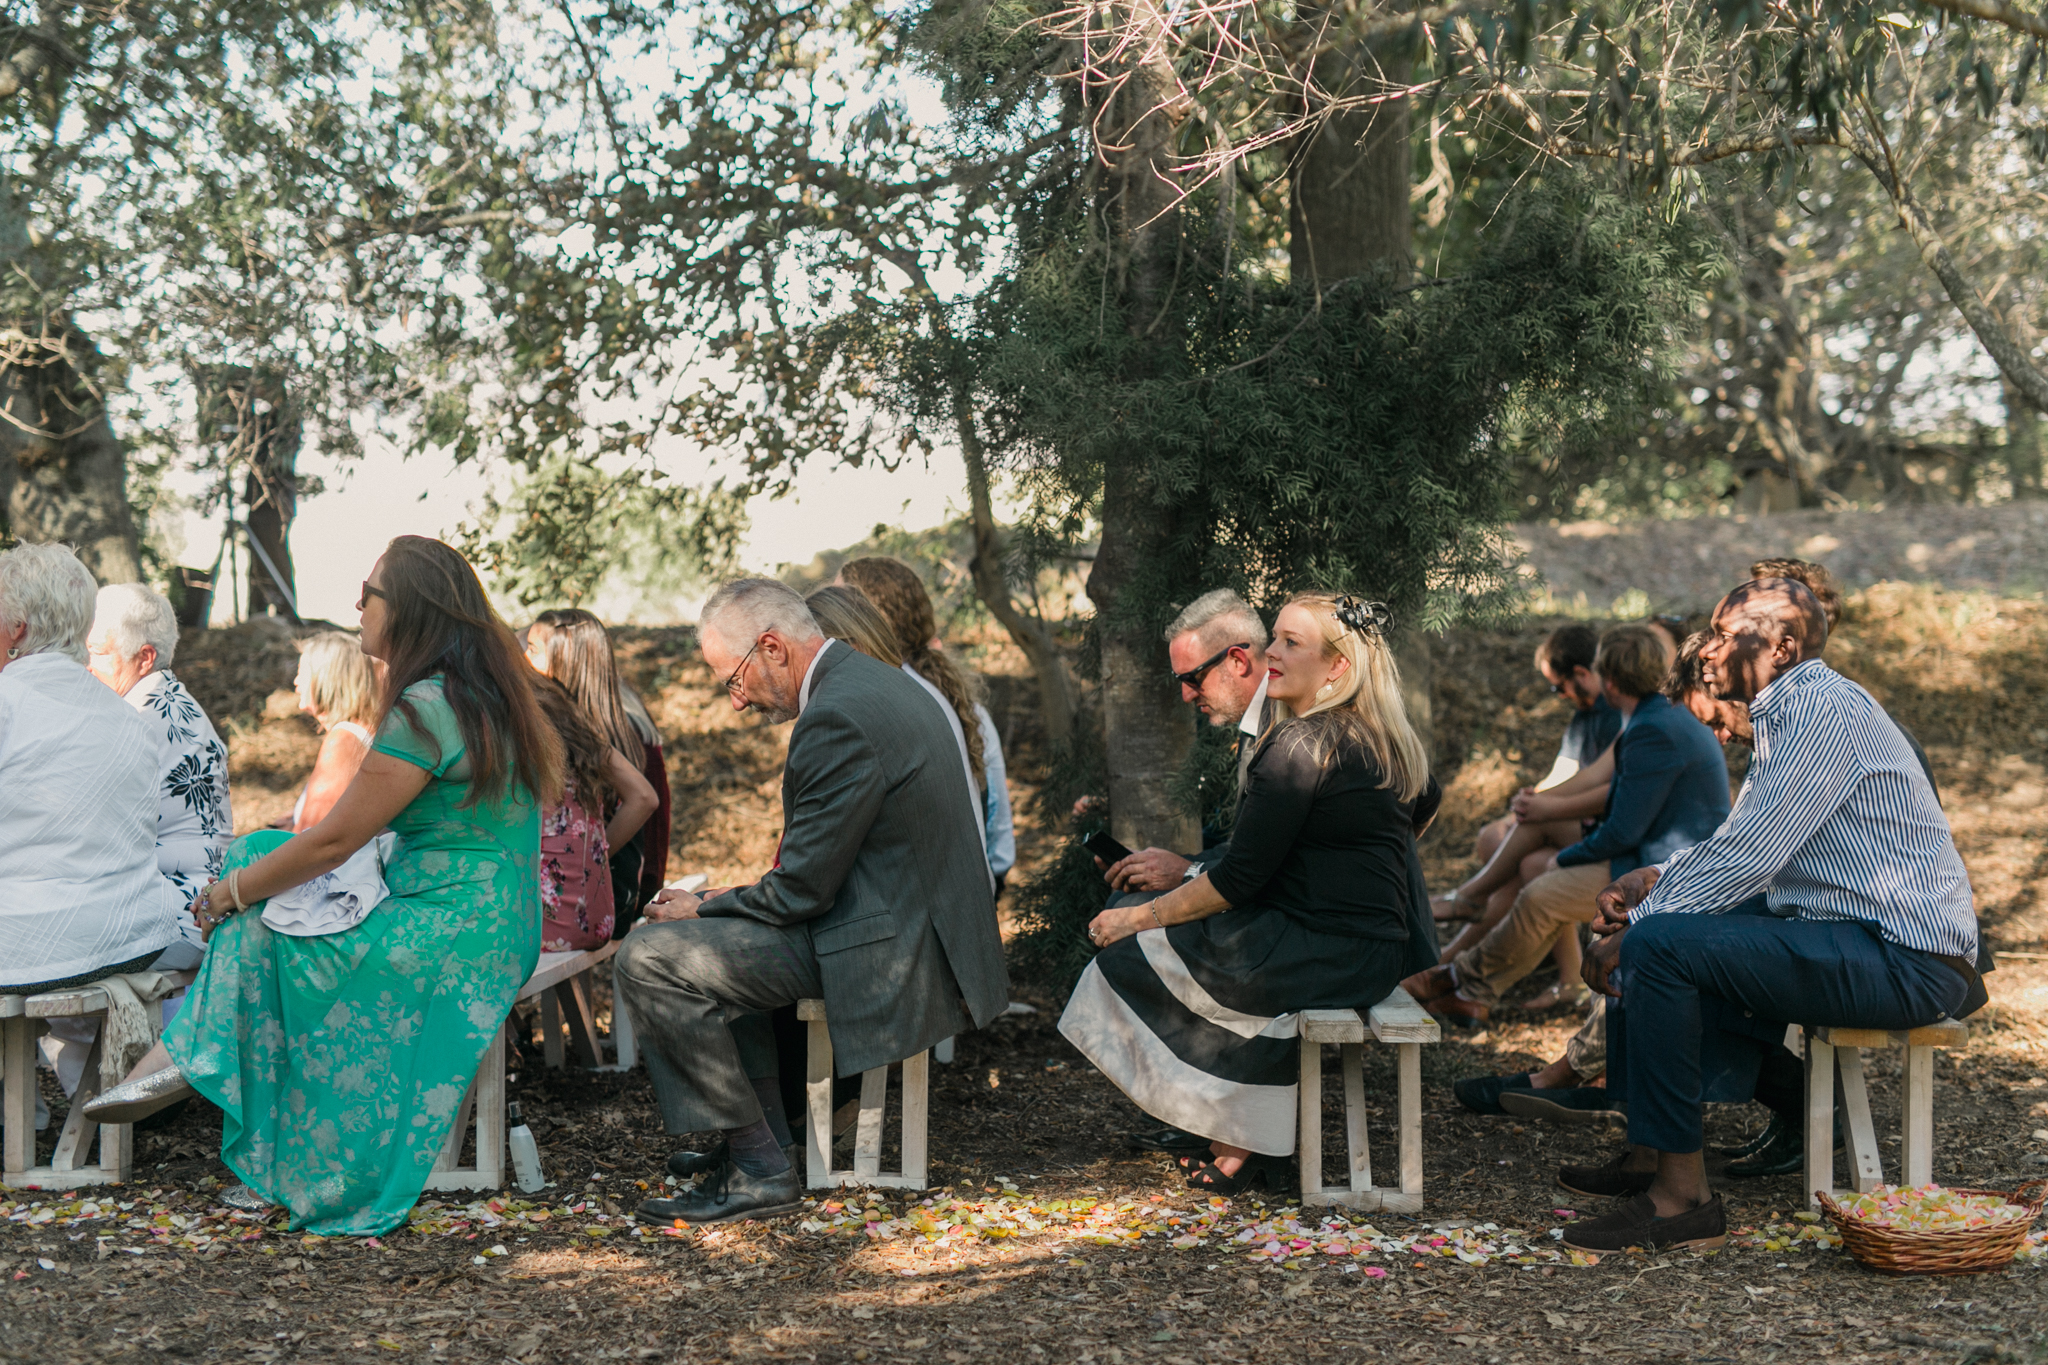 heisvisual-wedding-photographers-spier-wine-farm-stellenbosch071.jpg